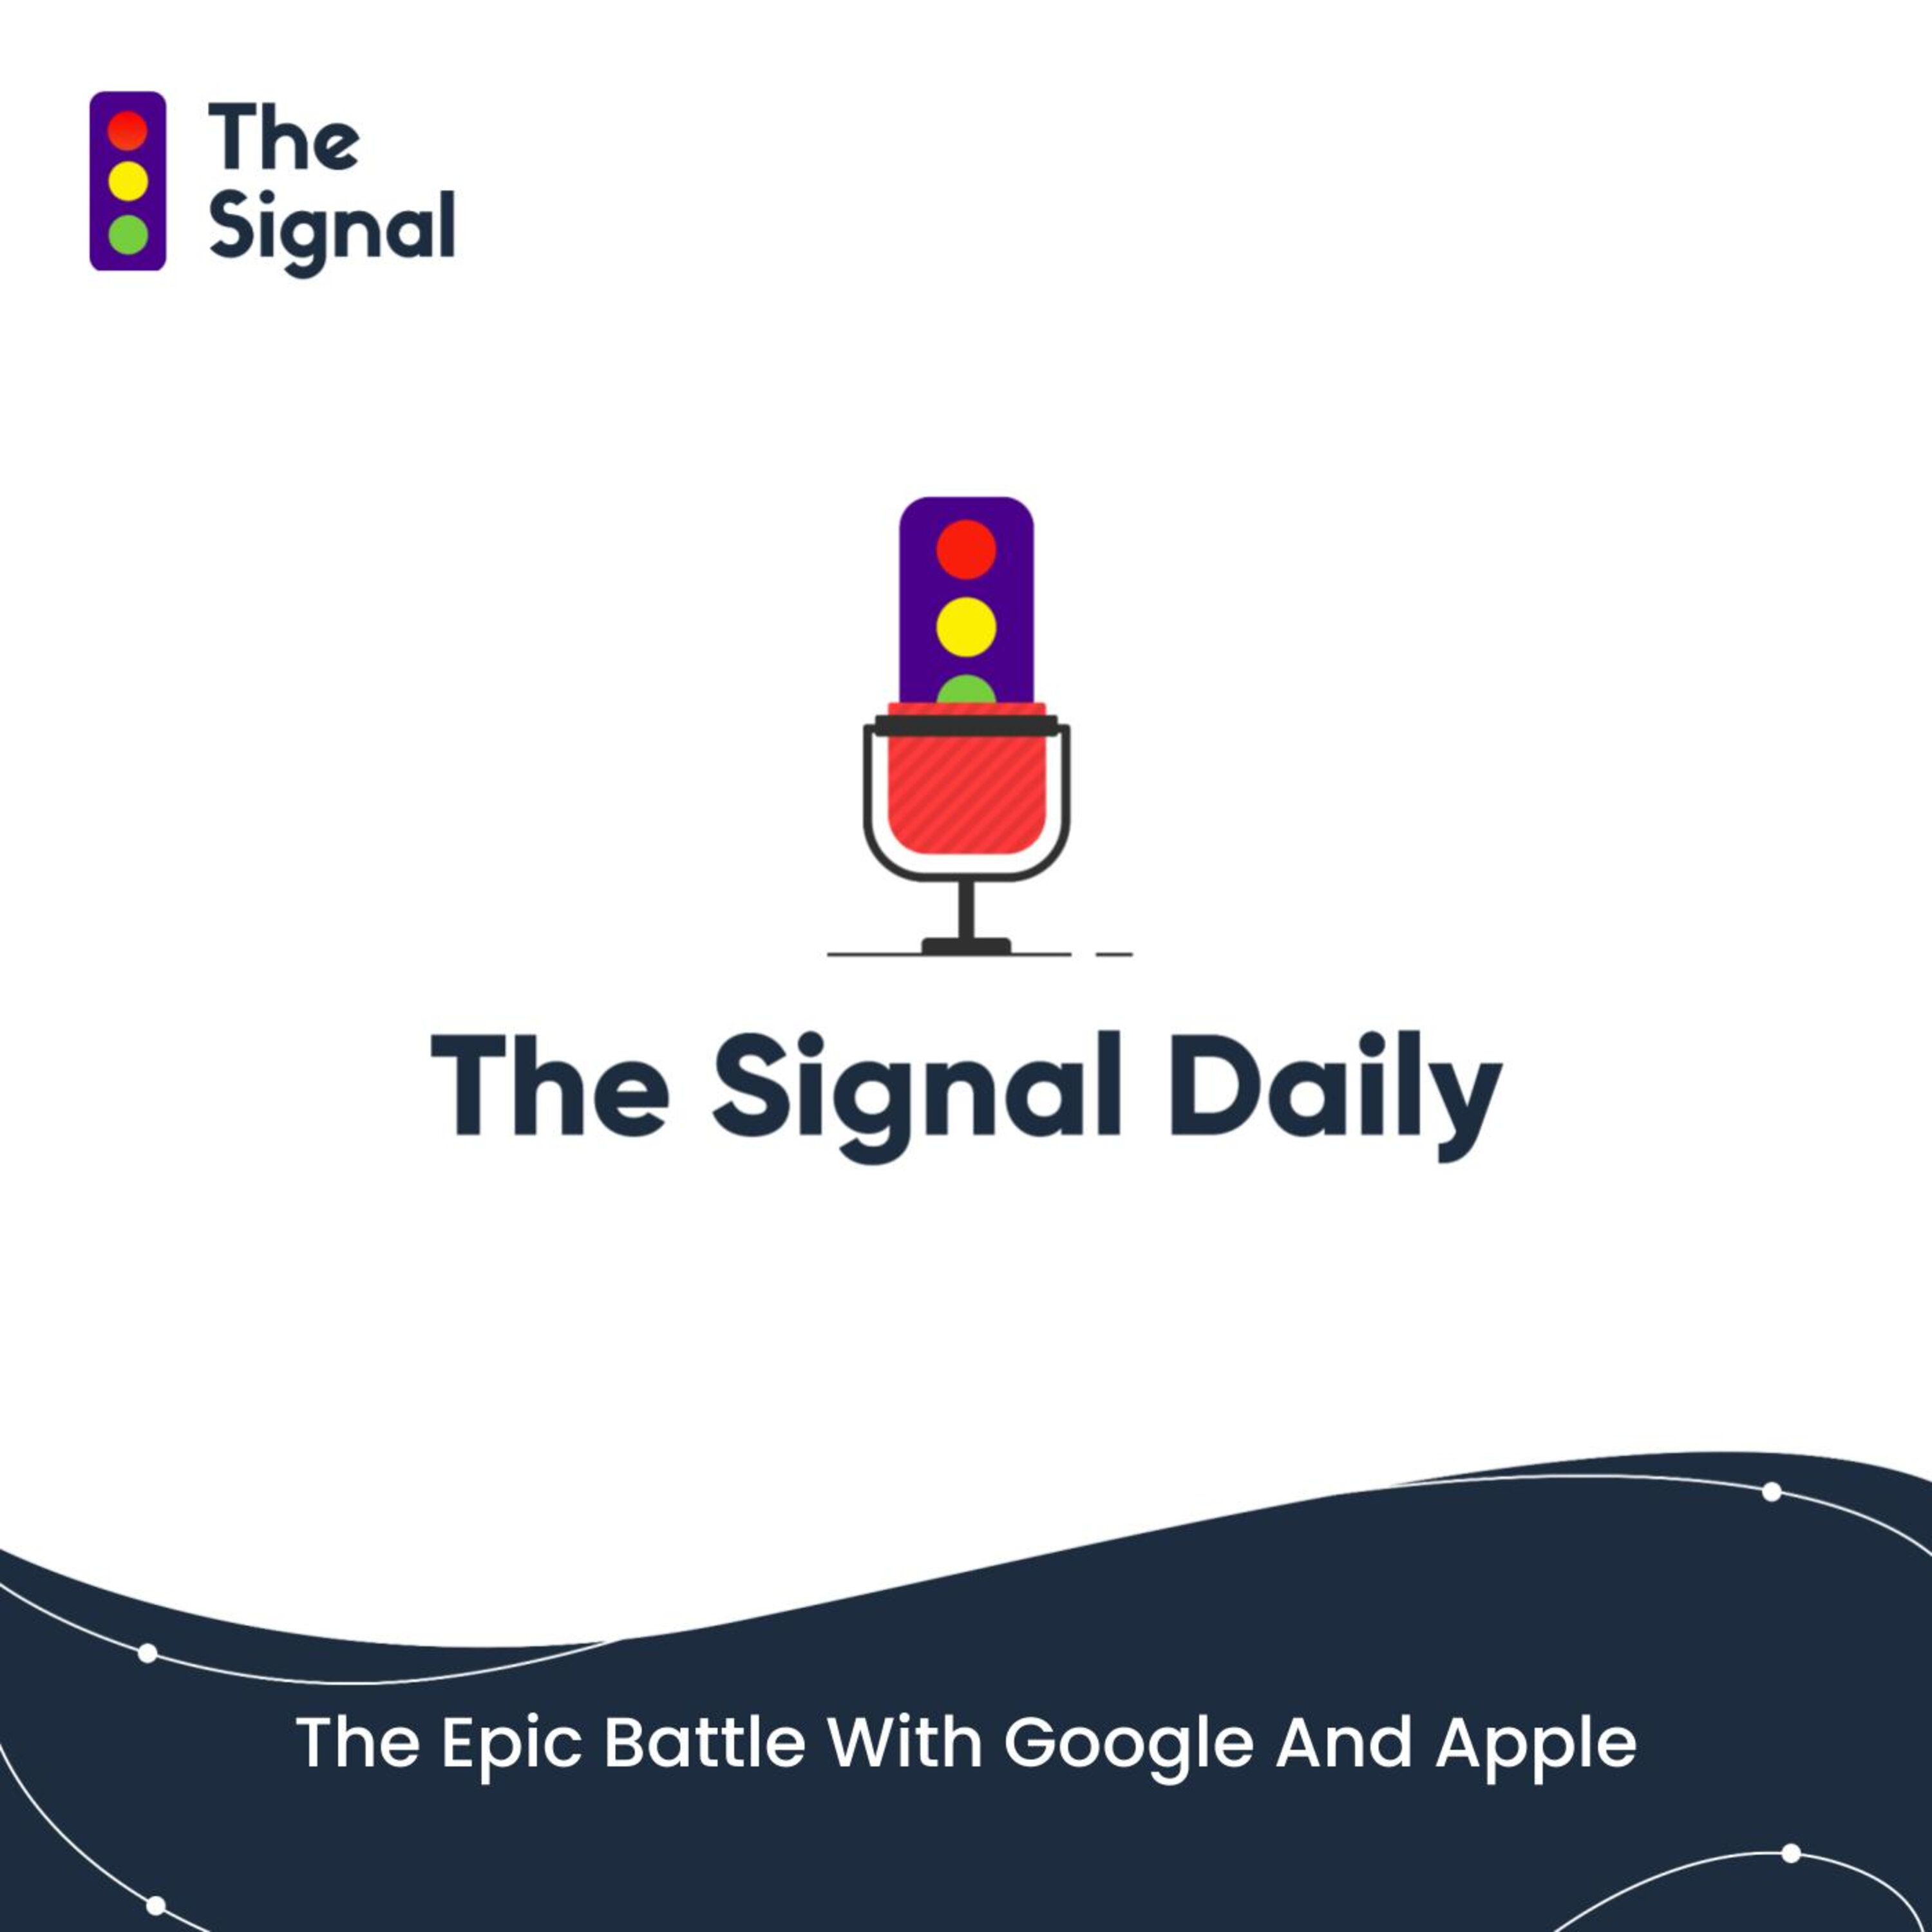 The Epic Battle With Google And Apple